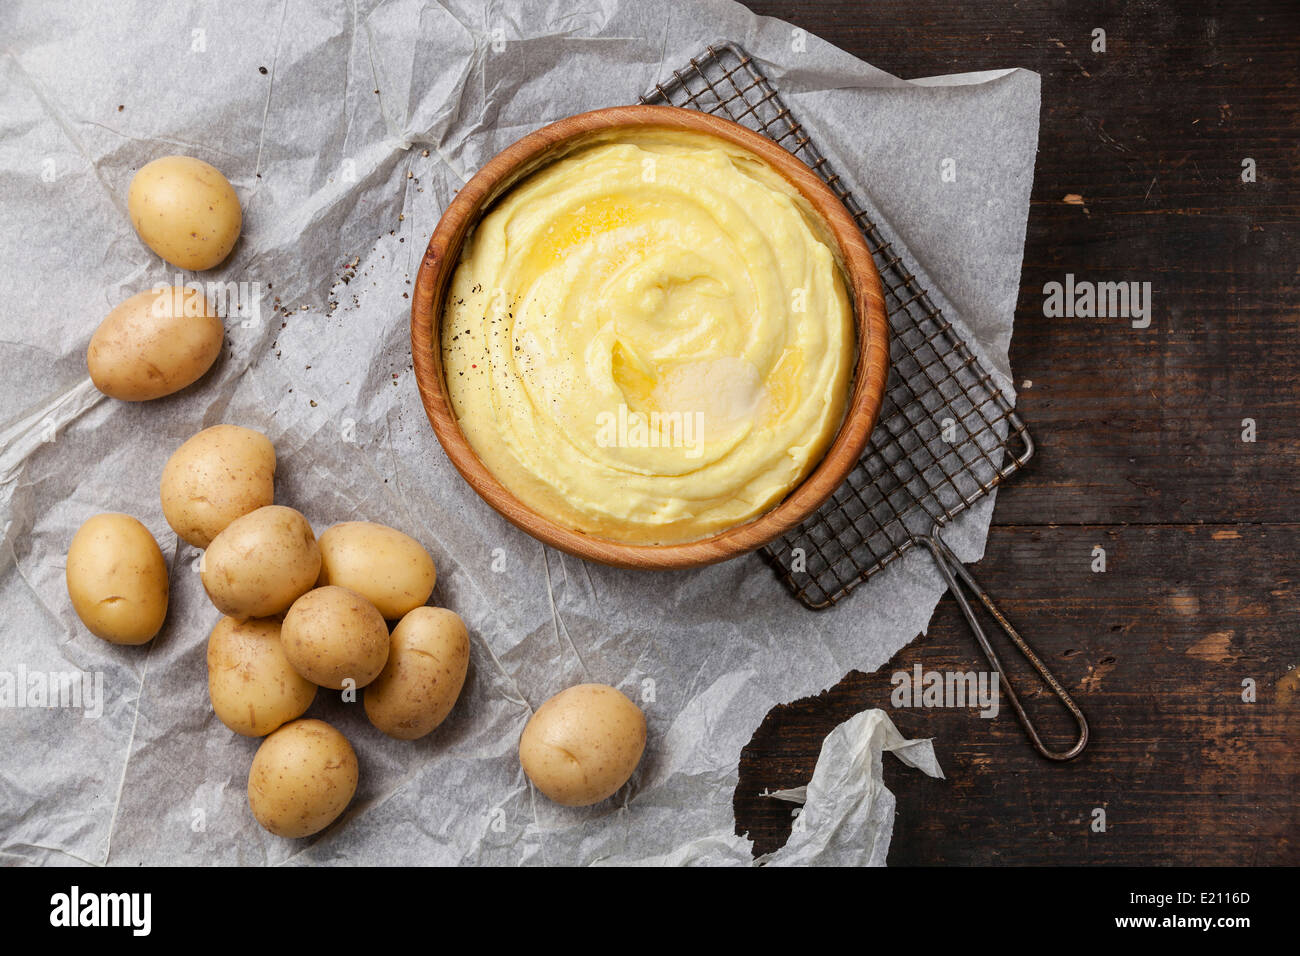 Mashed potatoes and raw potatoes on dark wooden background - Stock Image